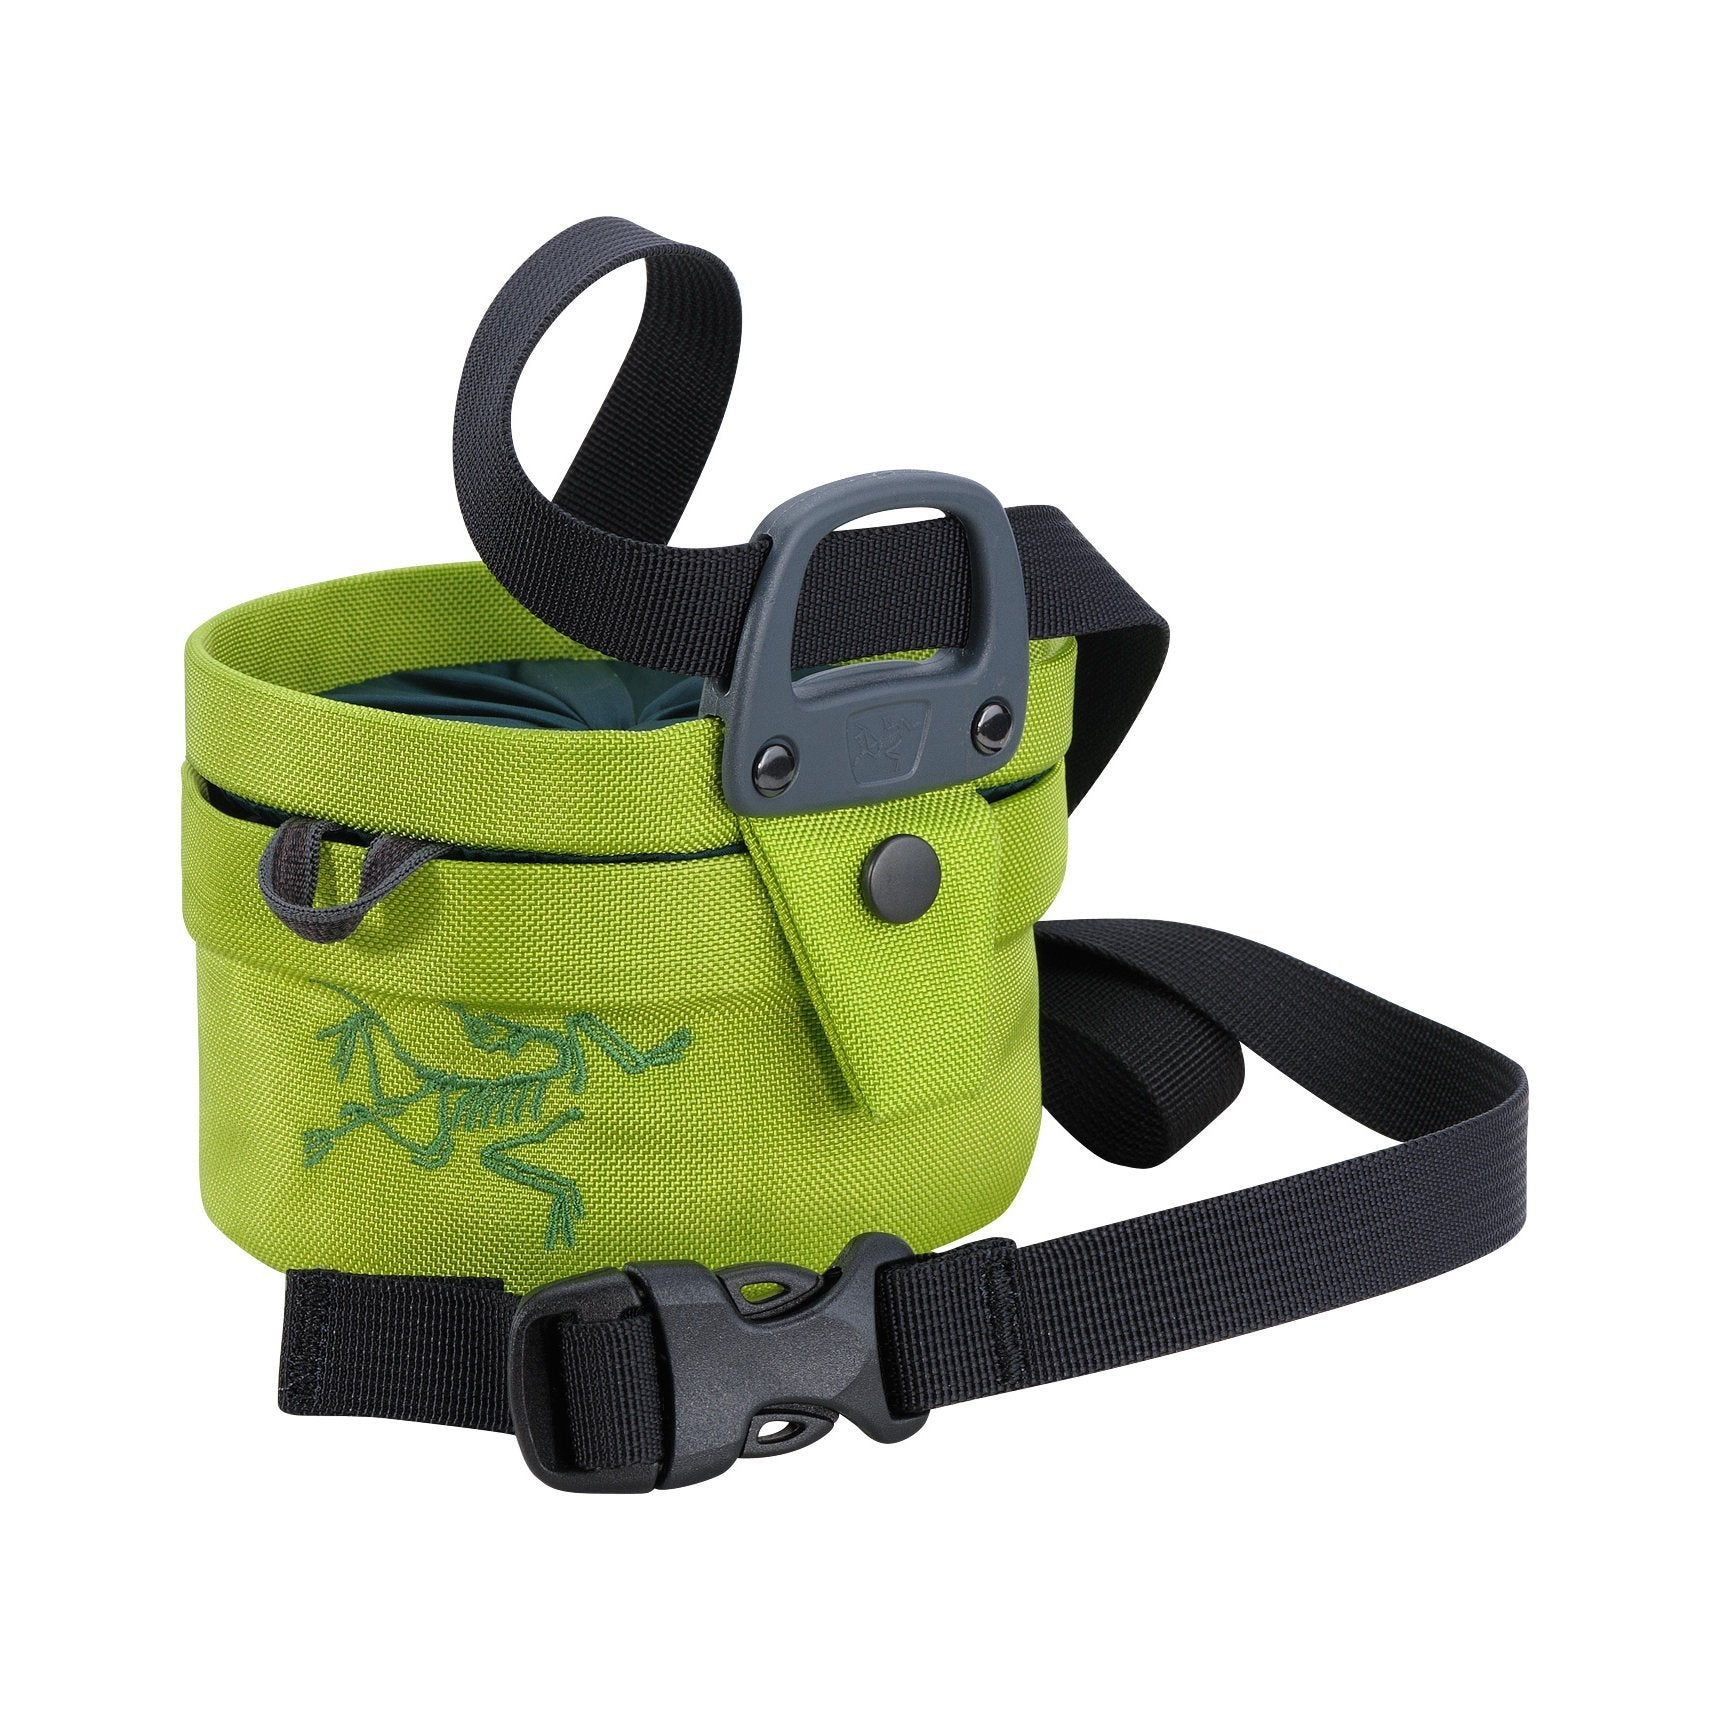 ArcTeryx Aperture Chalk Bag (Small), in green